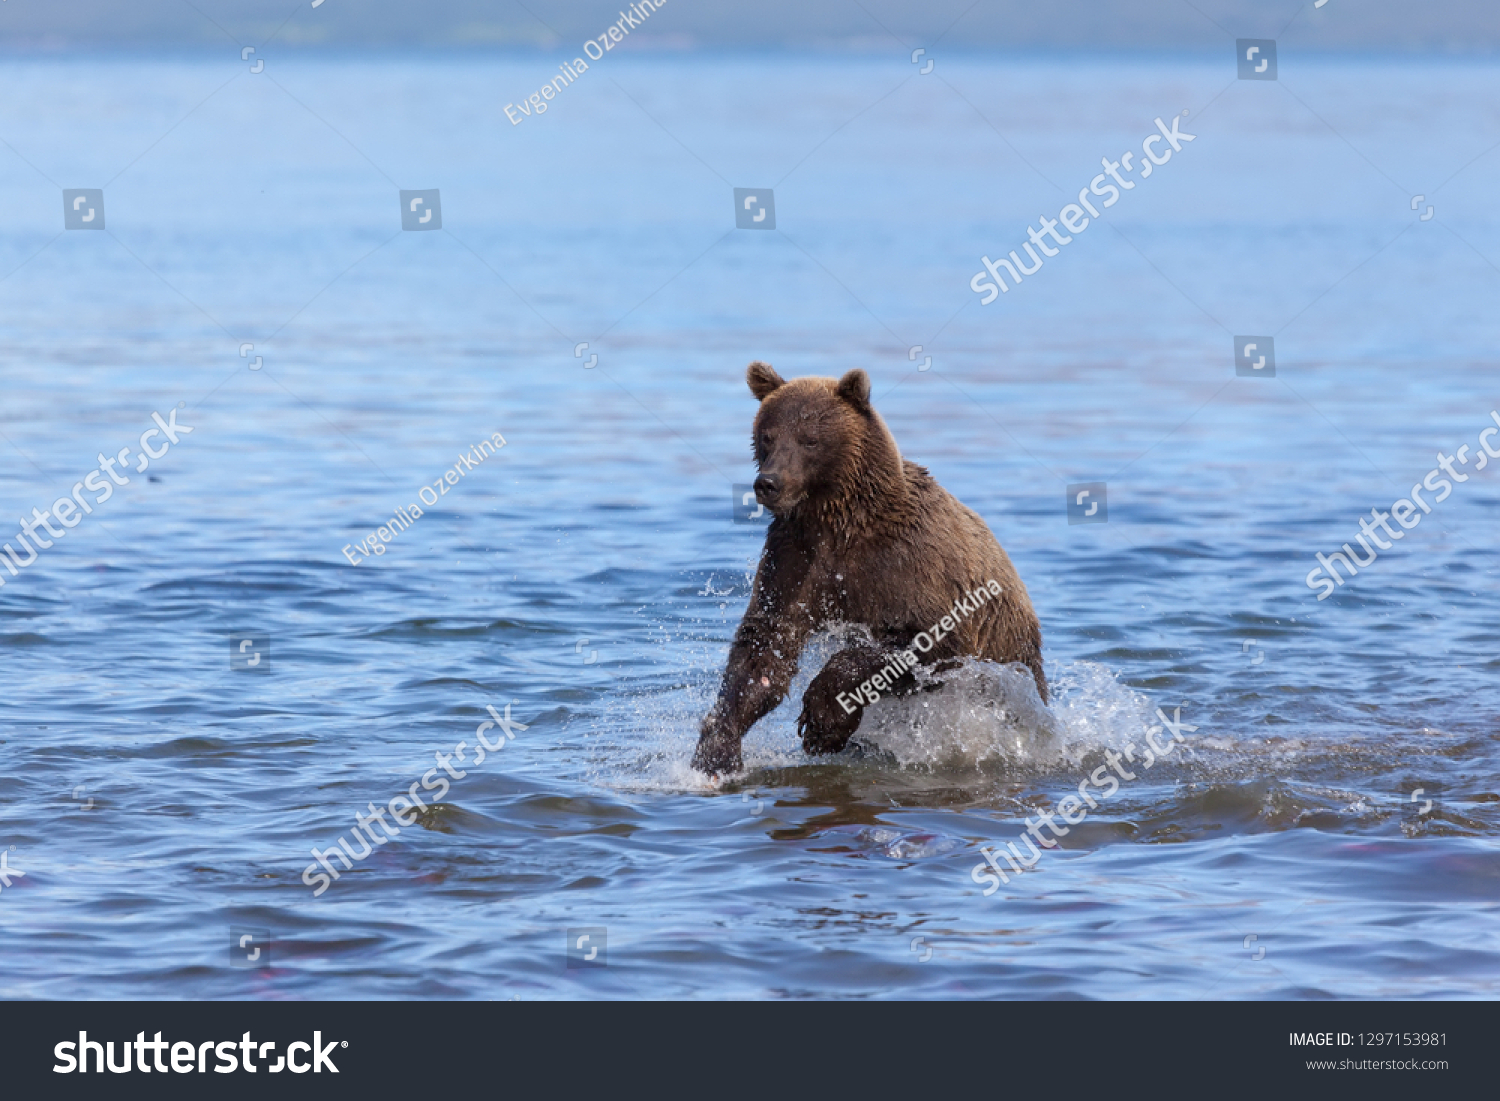 stock-photo-a-wild-brown-bear-grizzly-fi